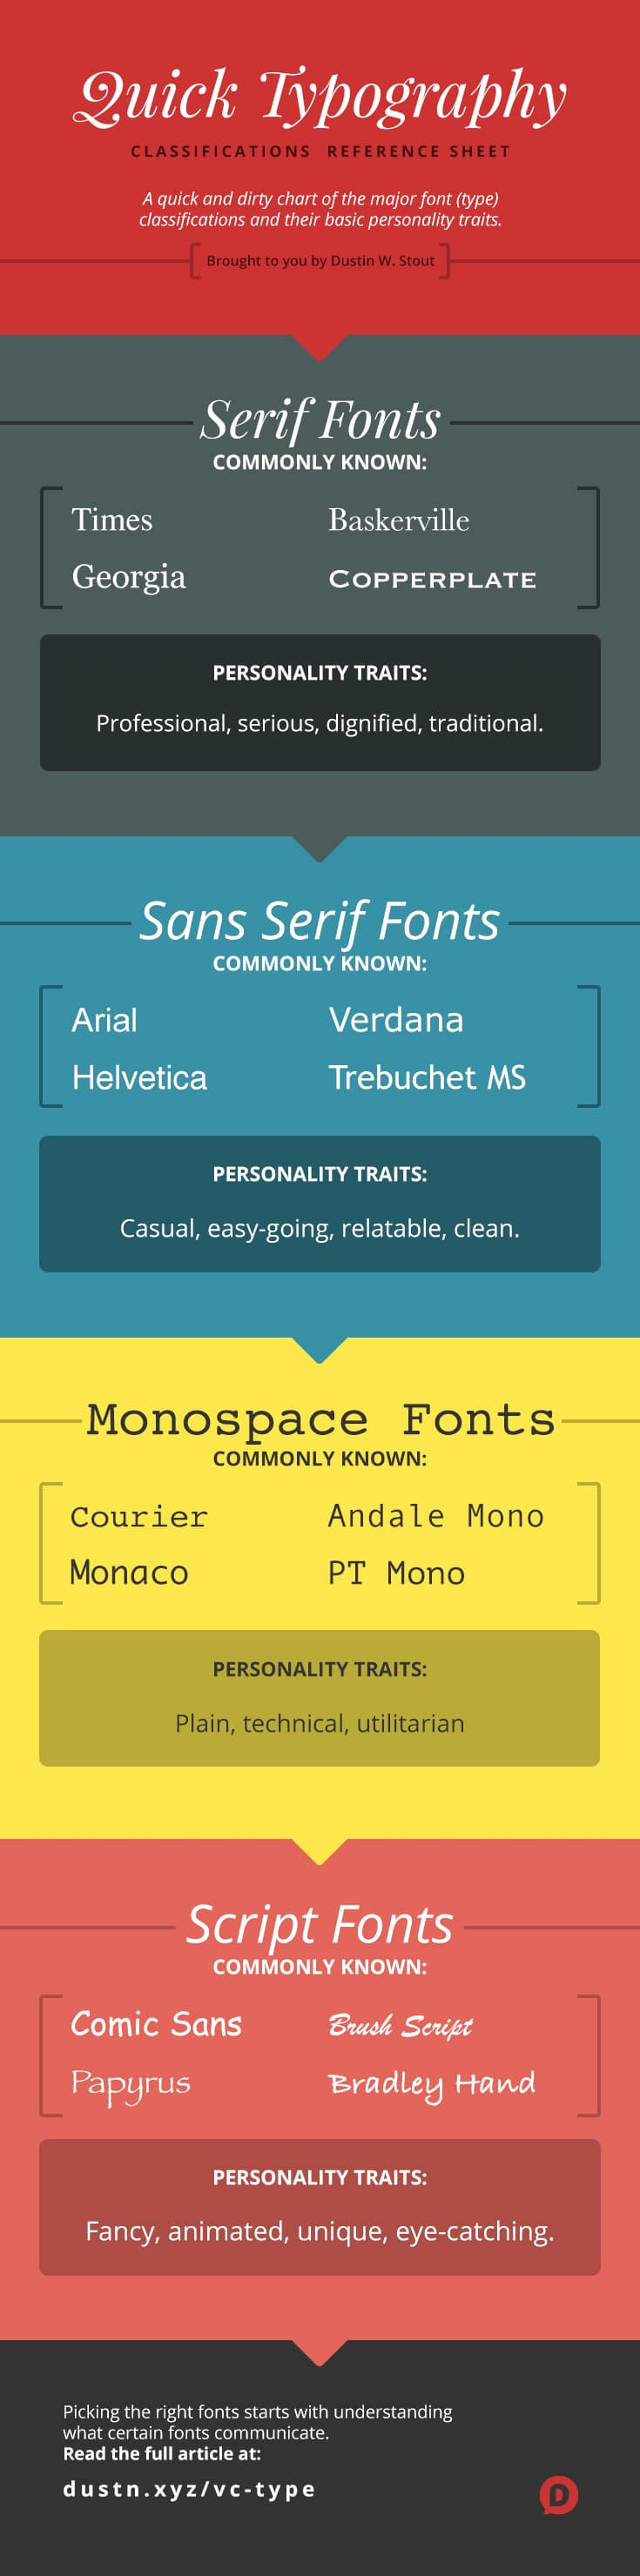 typography quick-reference sheet